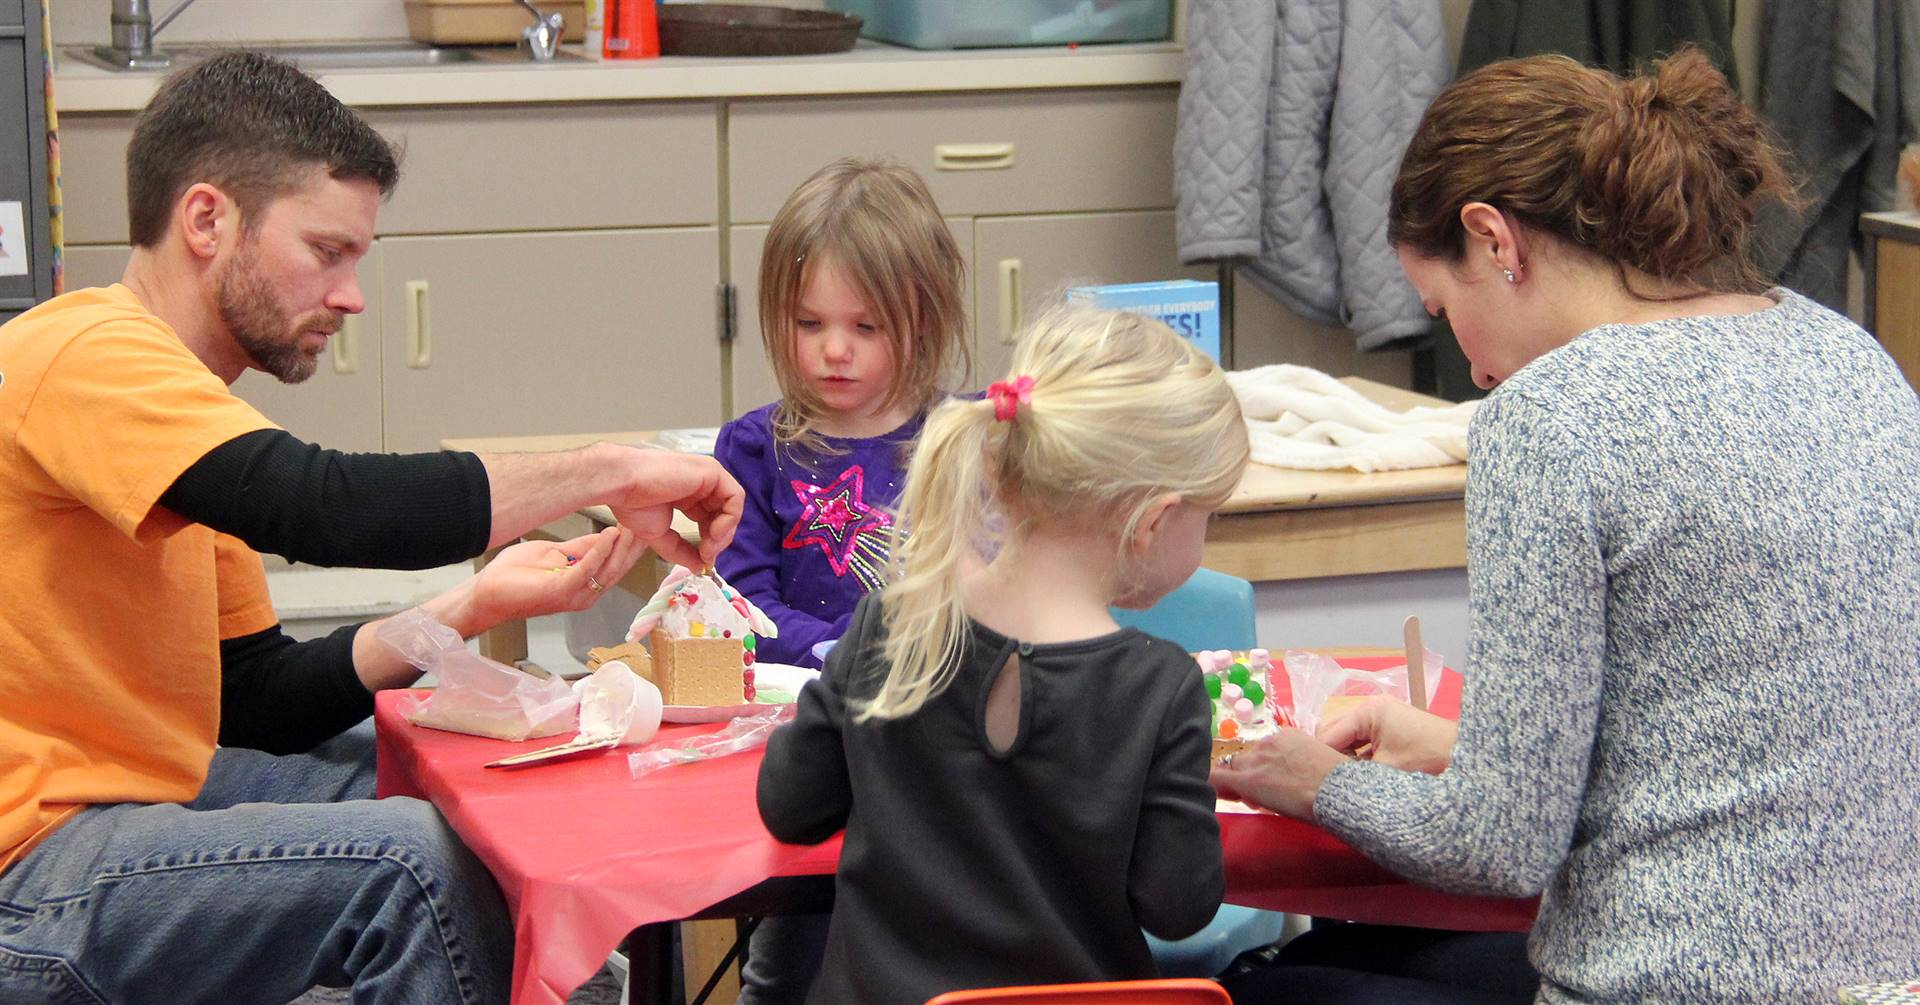 people working on gingerbread houses